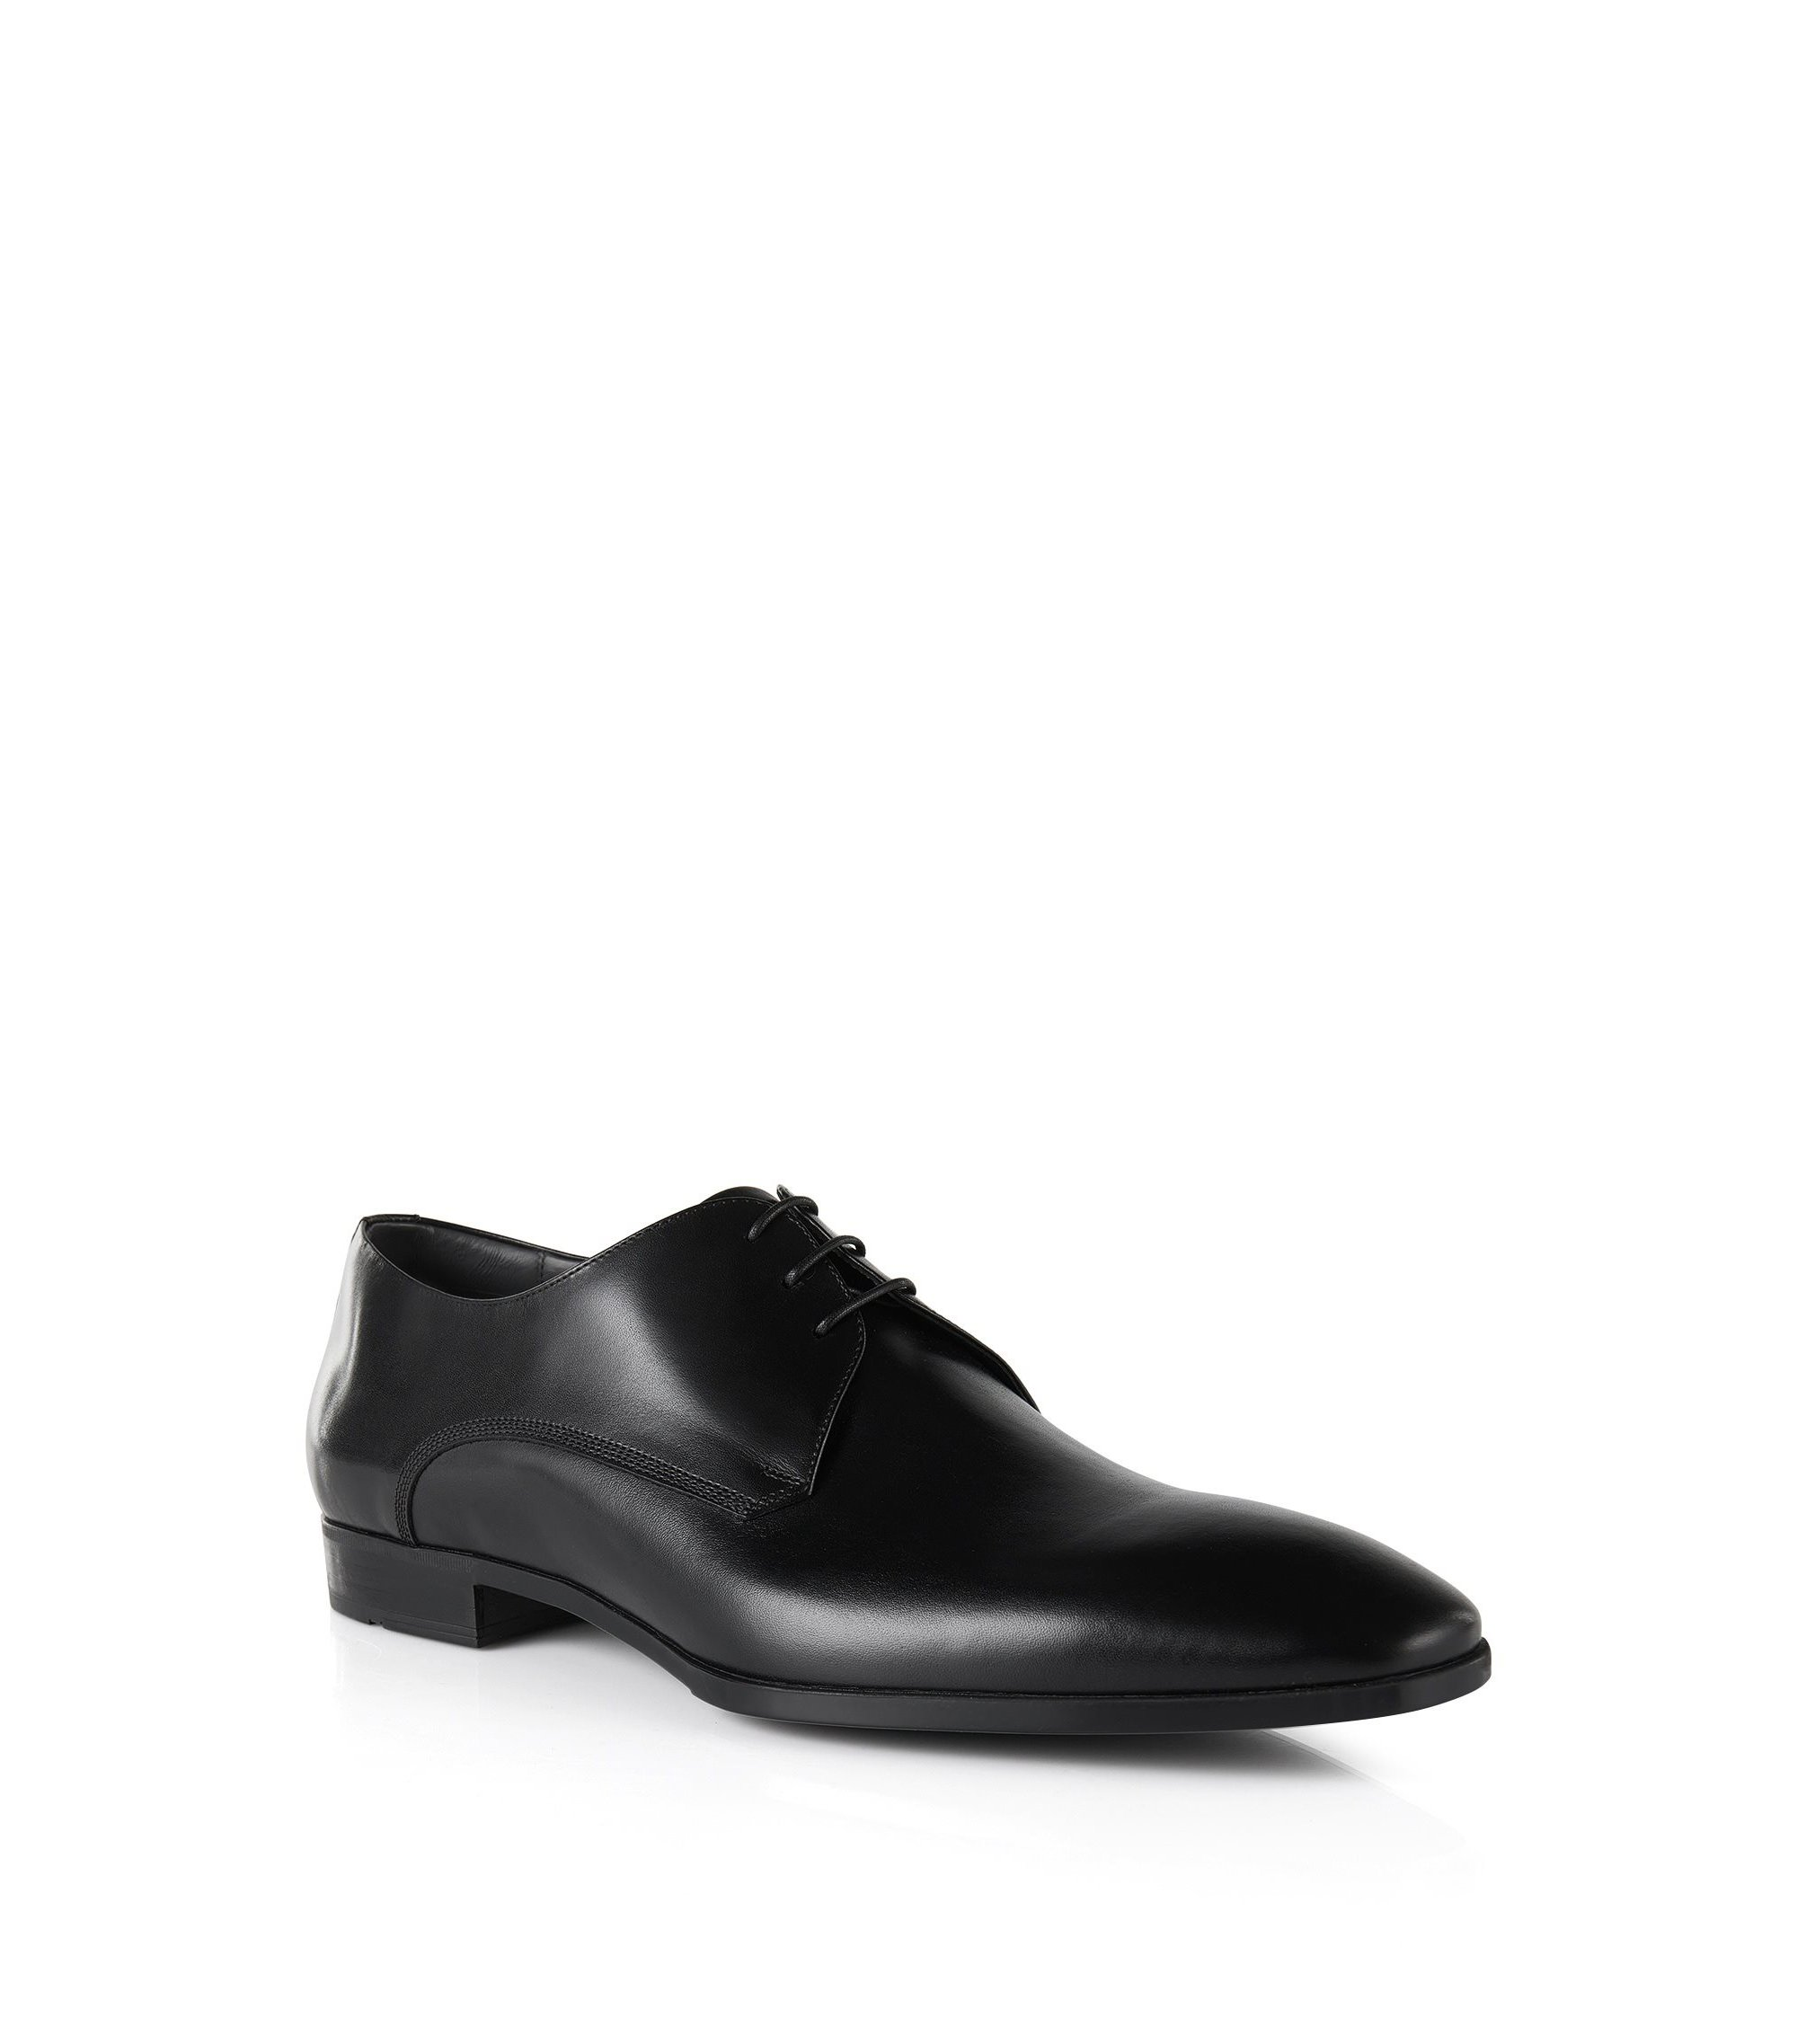 Leather Derby shoes with print detail, Black